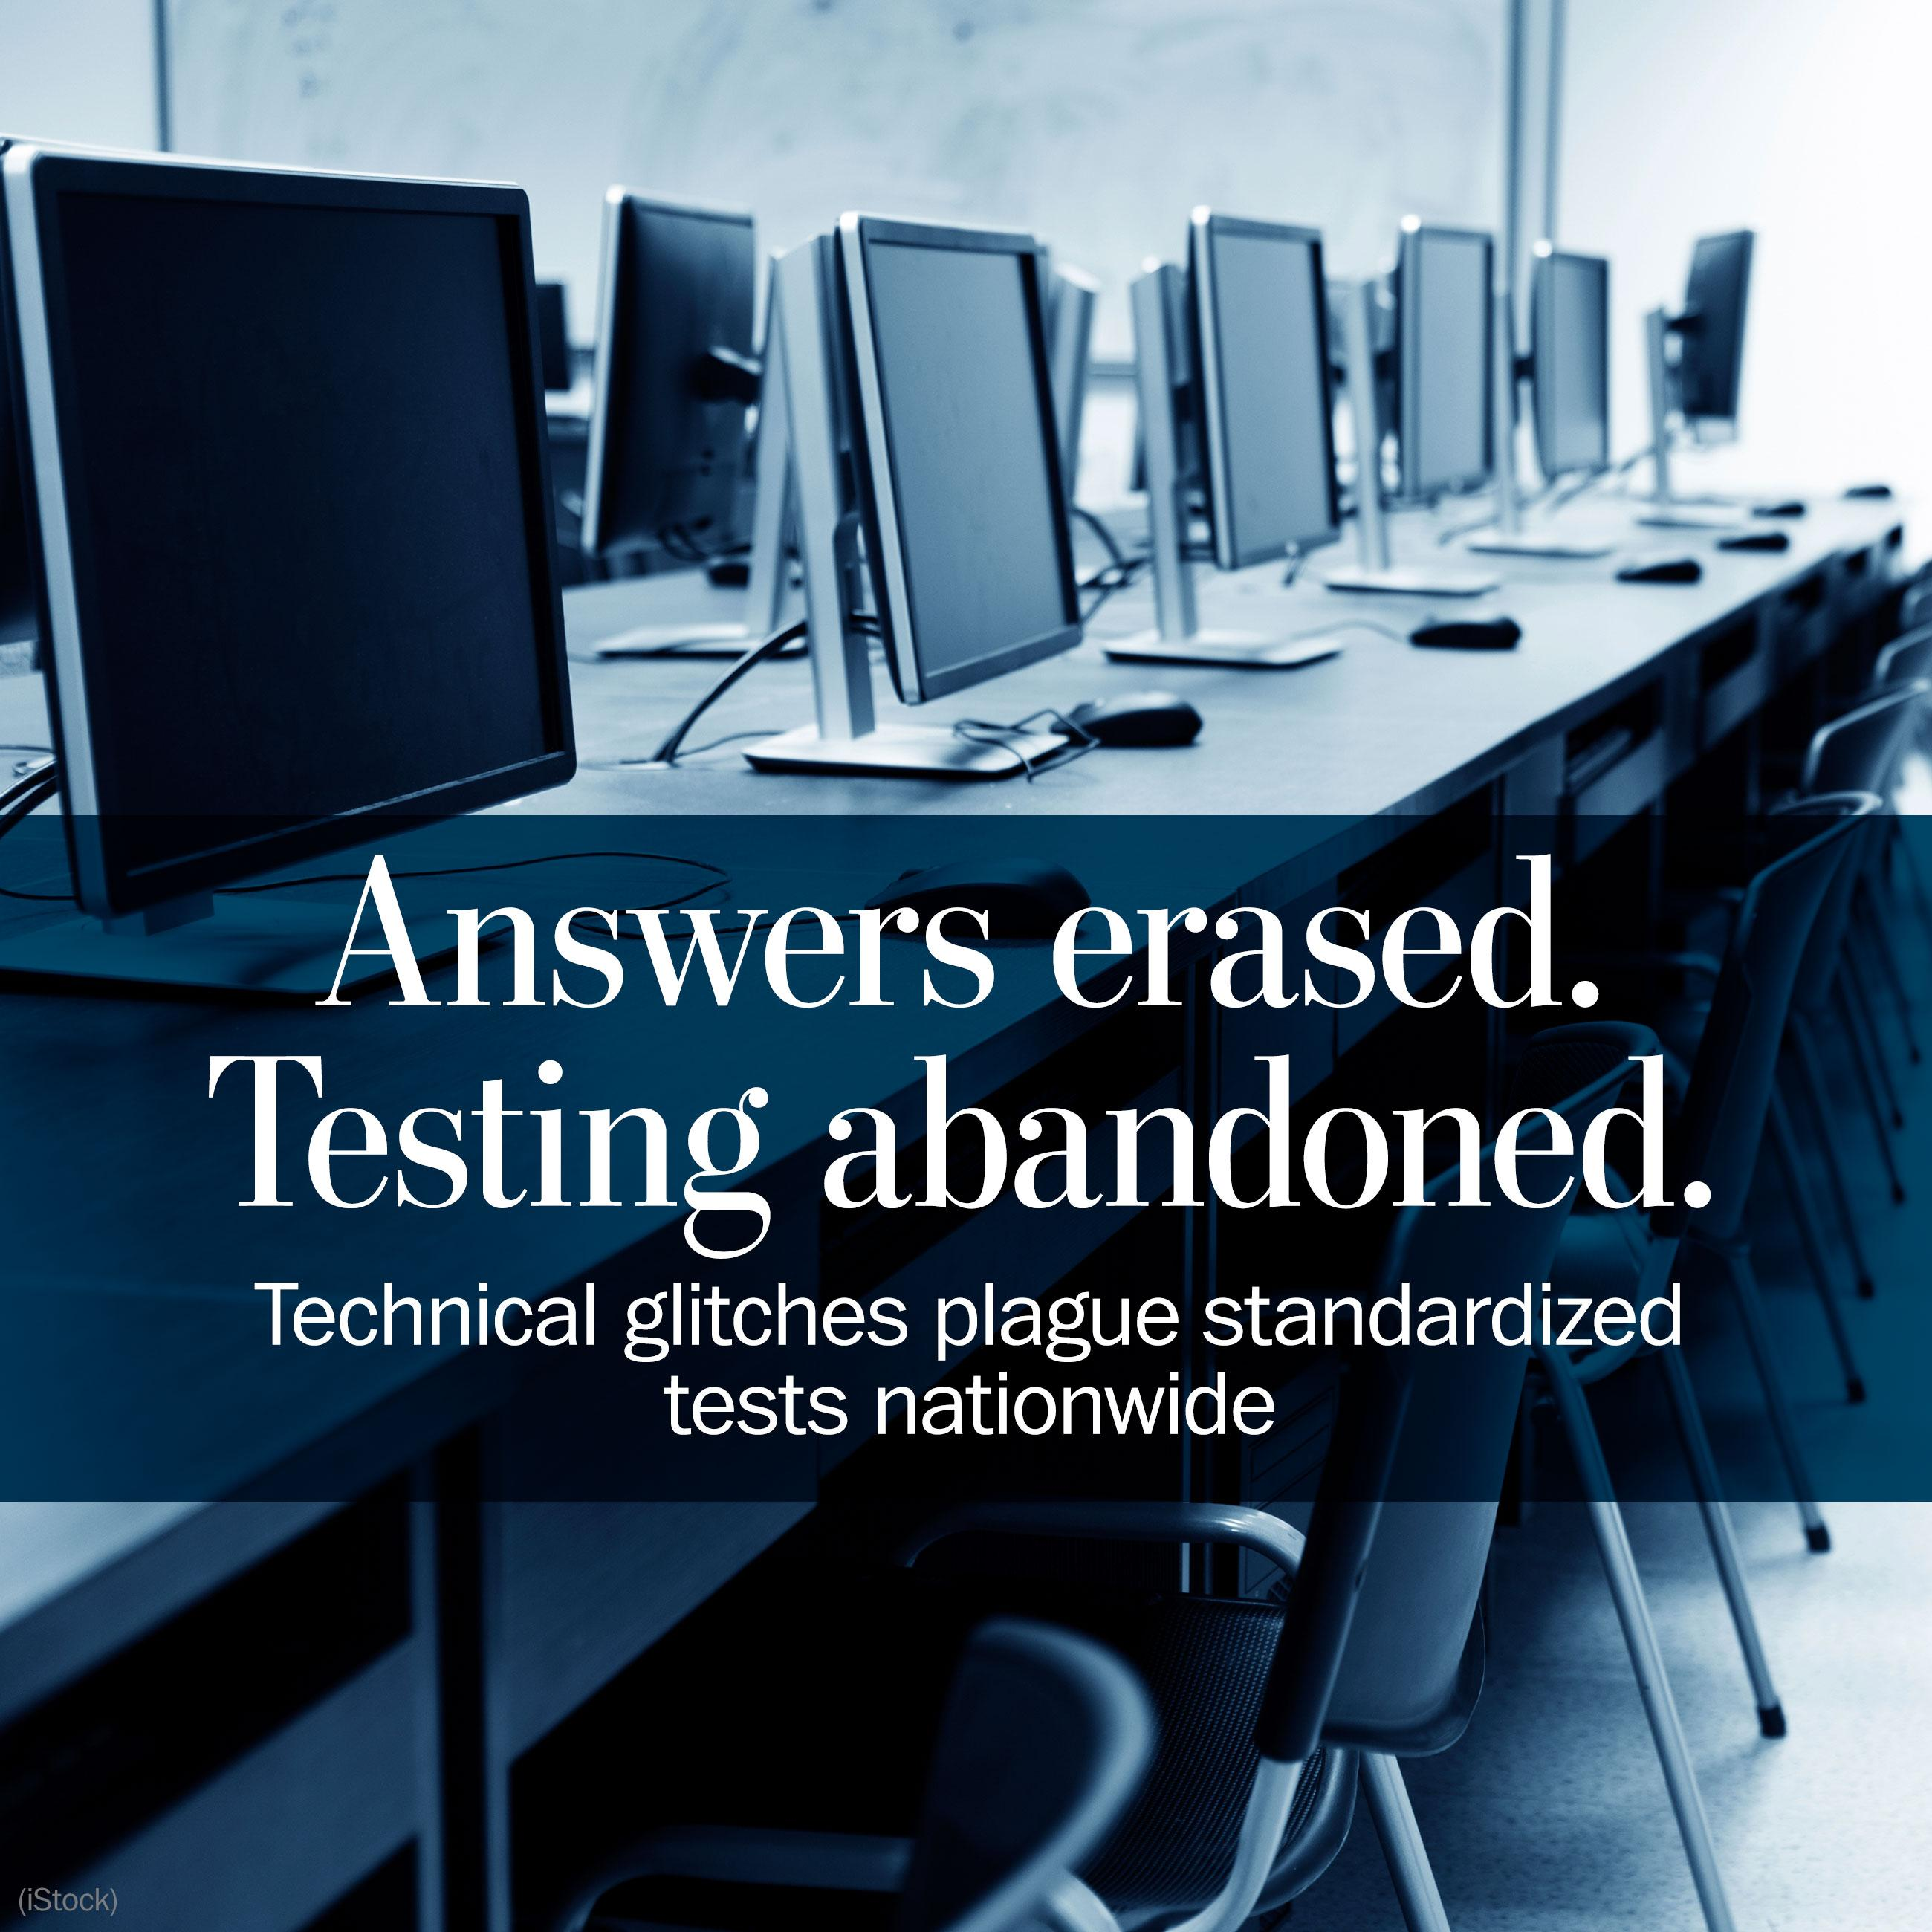 Technical glitches plague computer-based standardized tests nationwide